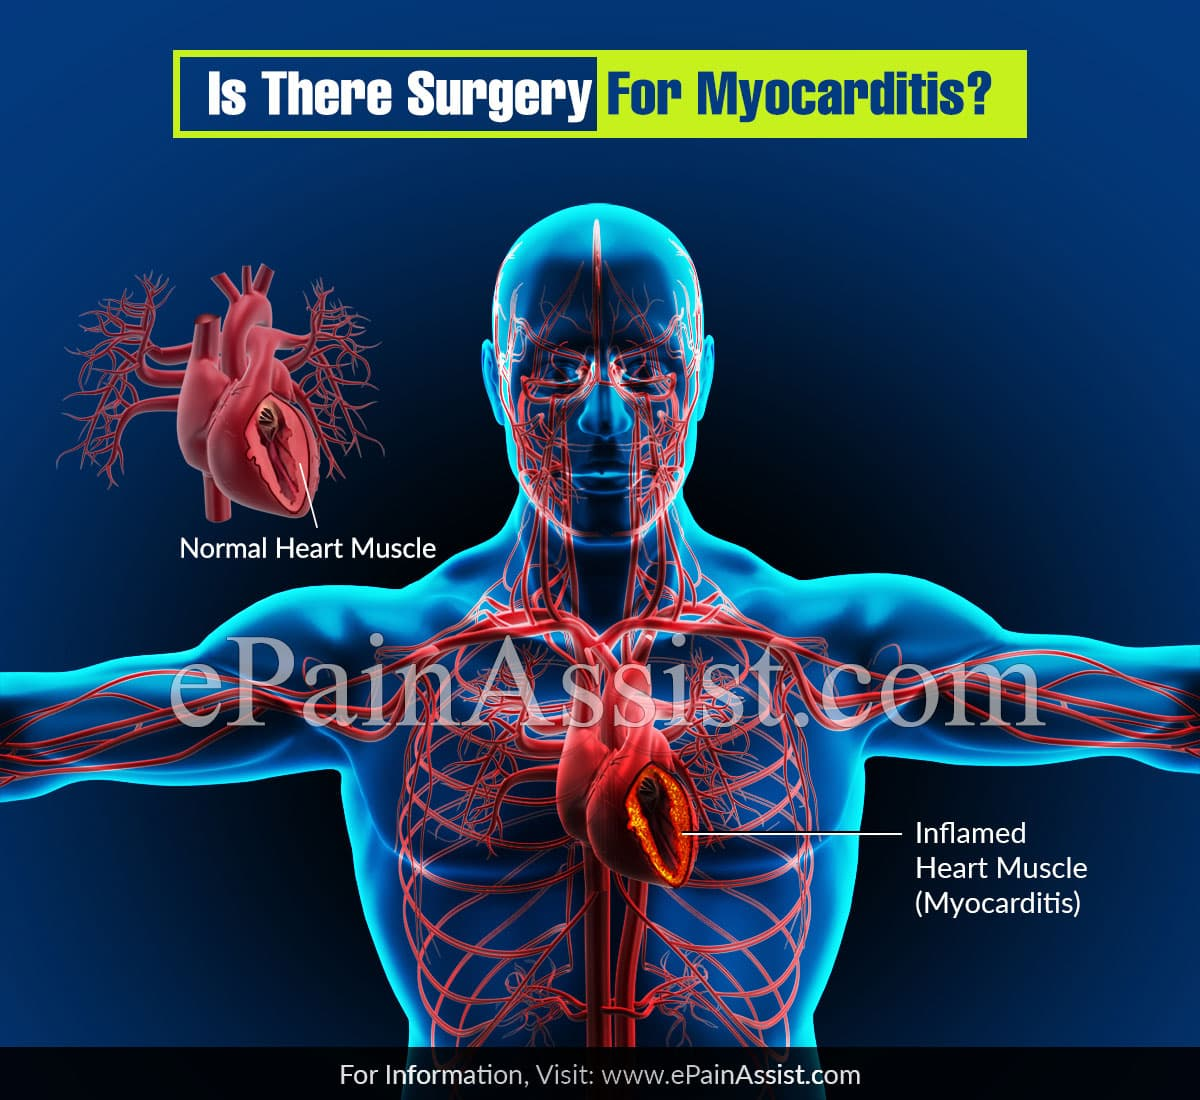 Is ThereAny Surgery For Myocarditis?